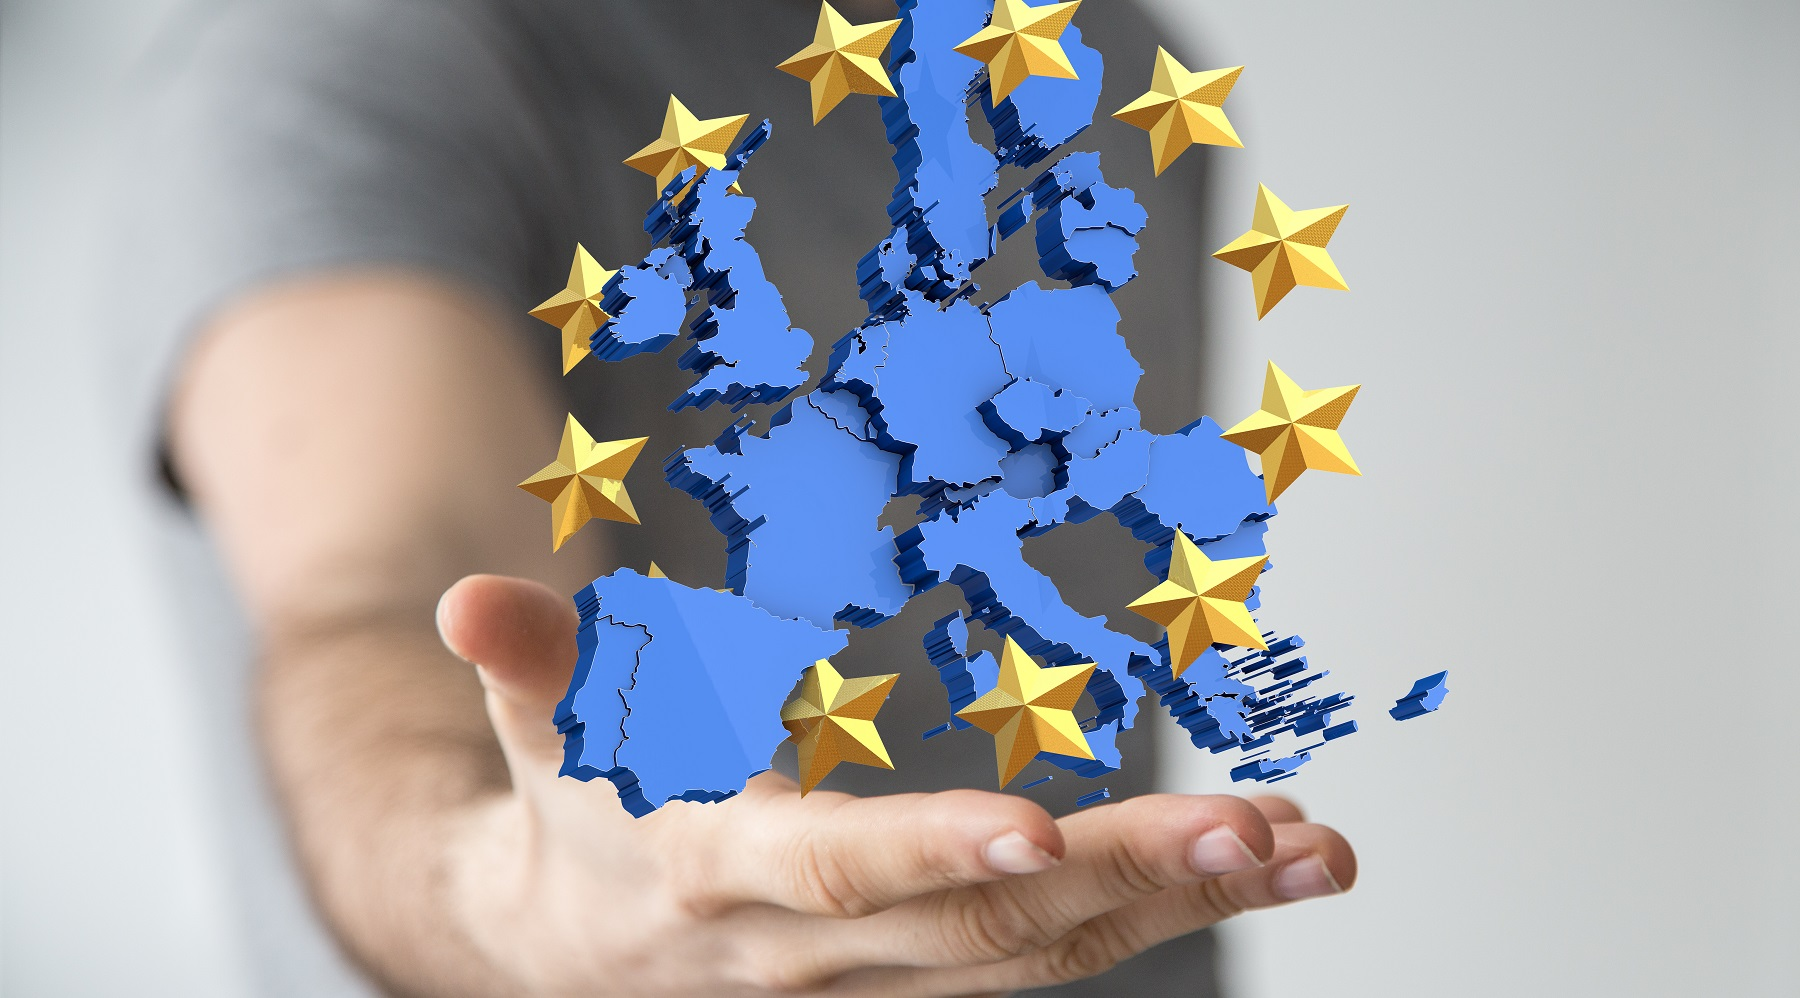 Does Privacy Shield's downfall signal the end of US-EU data transfers?